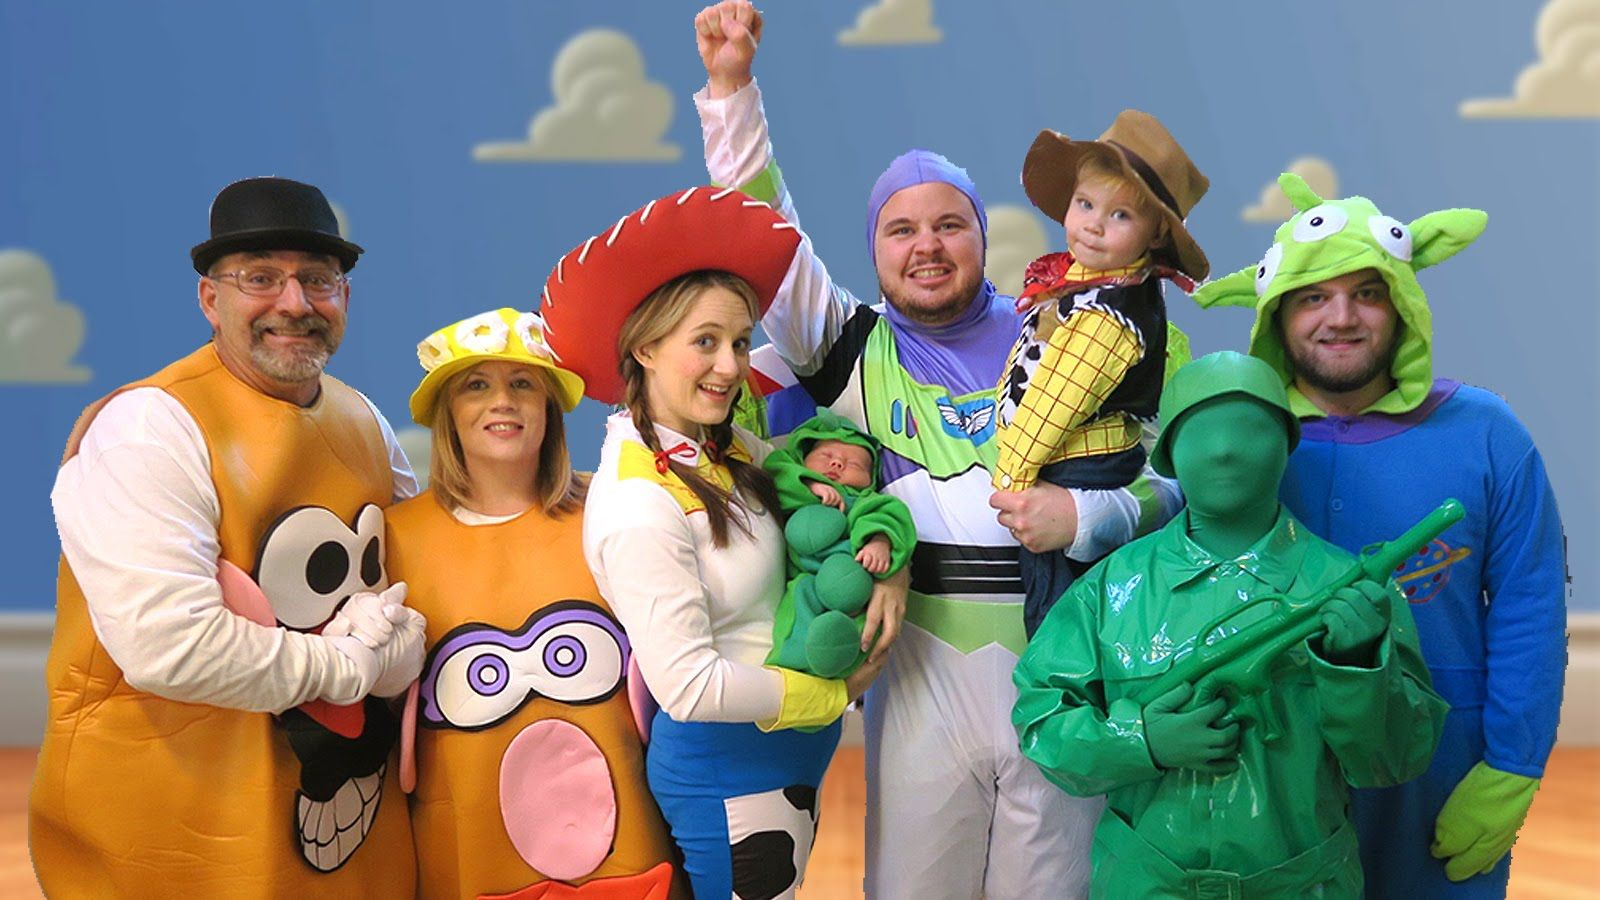 Toy Story Halloween Special Daily Bumps Halloween